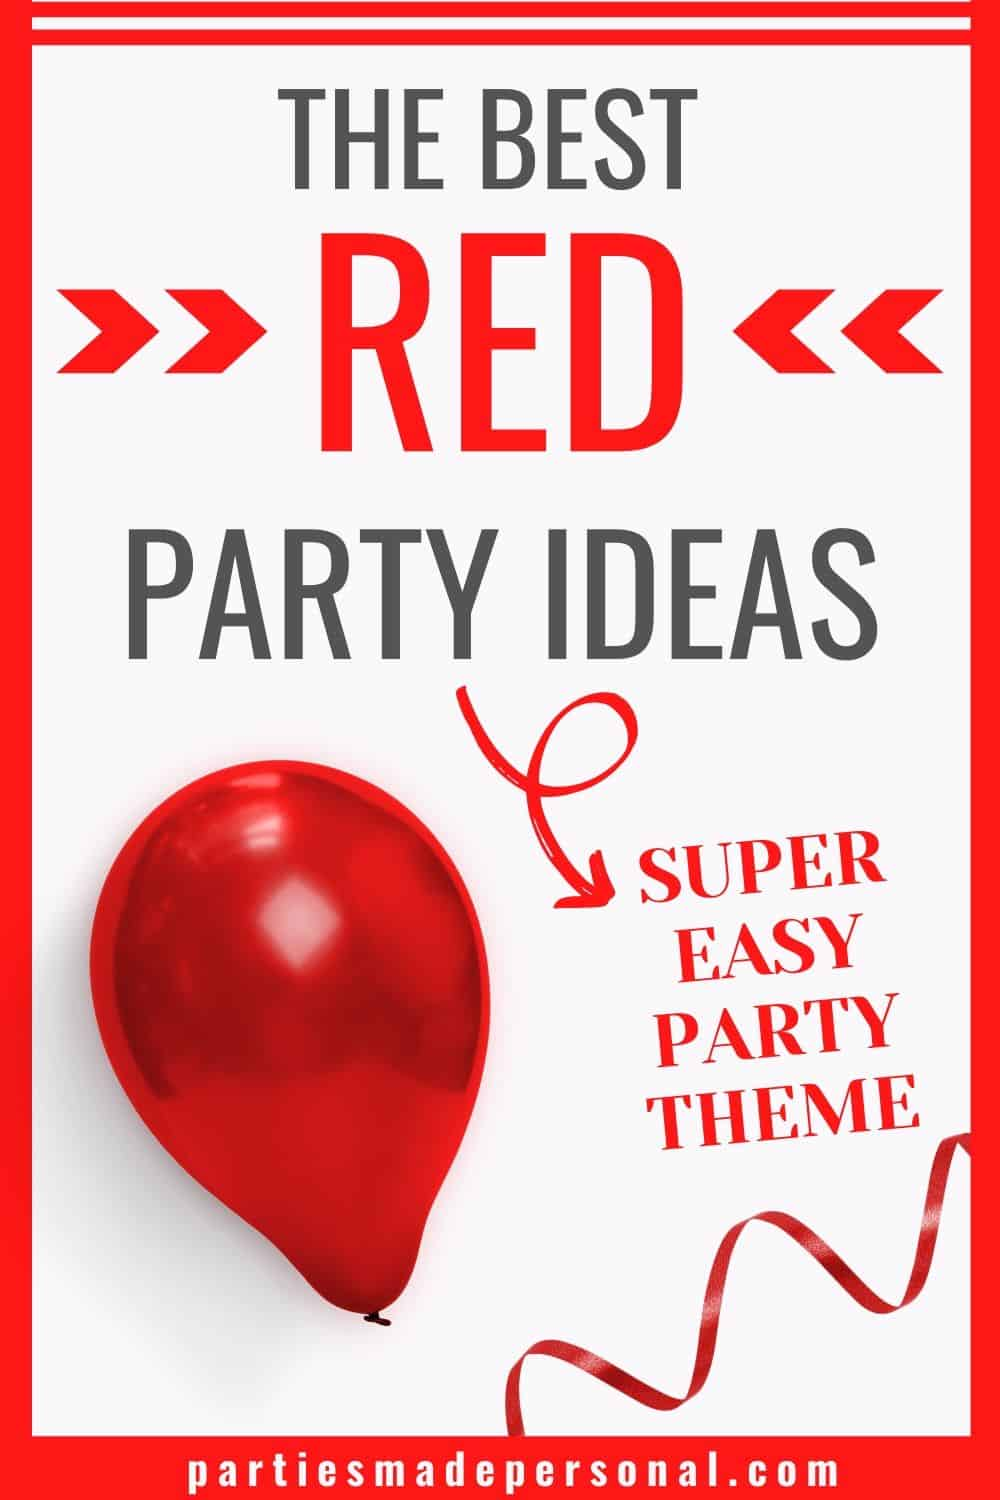 Red party themes